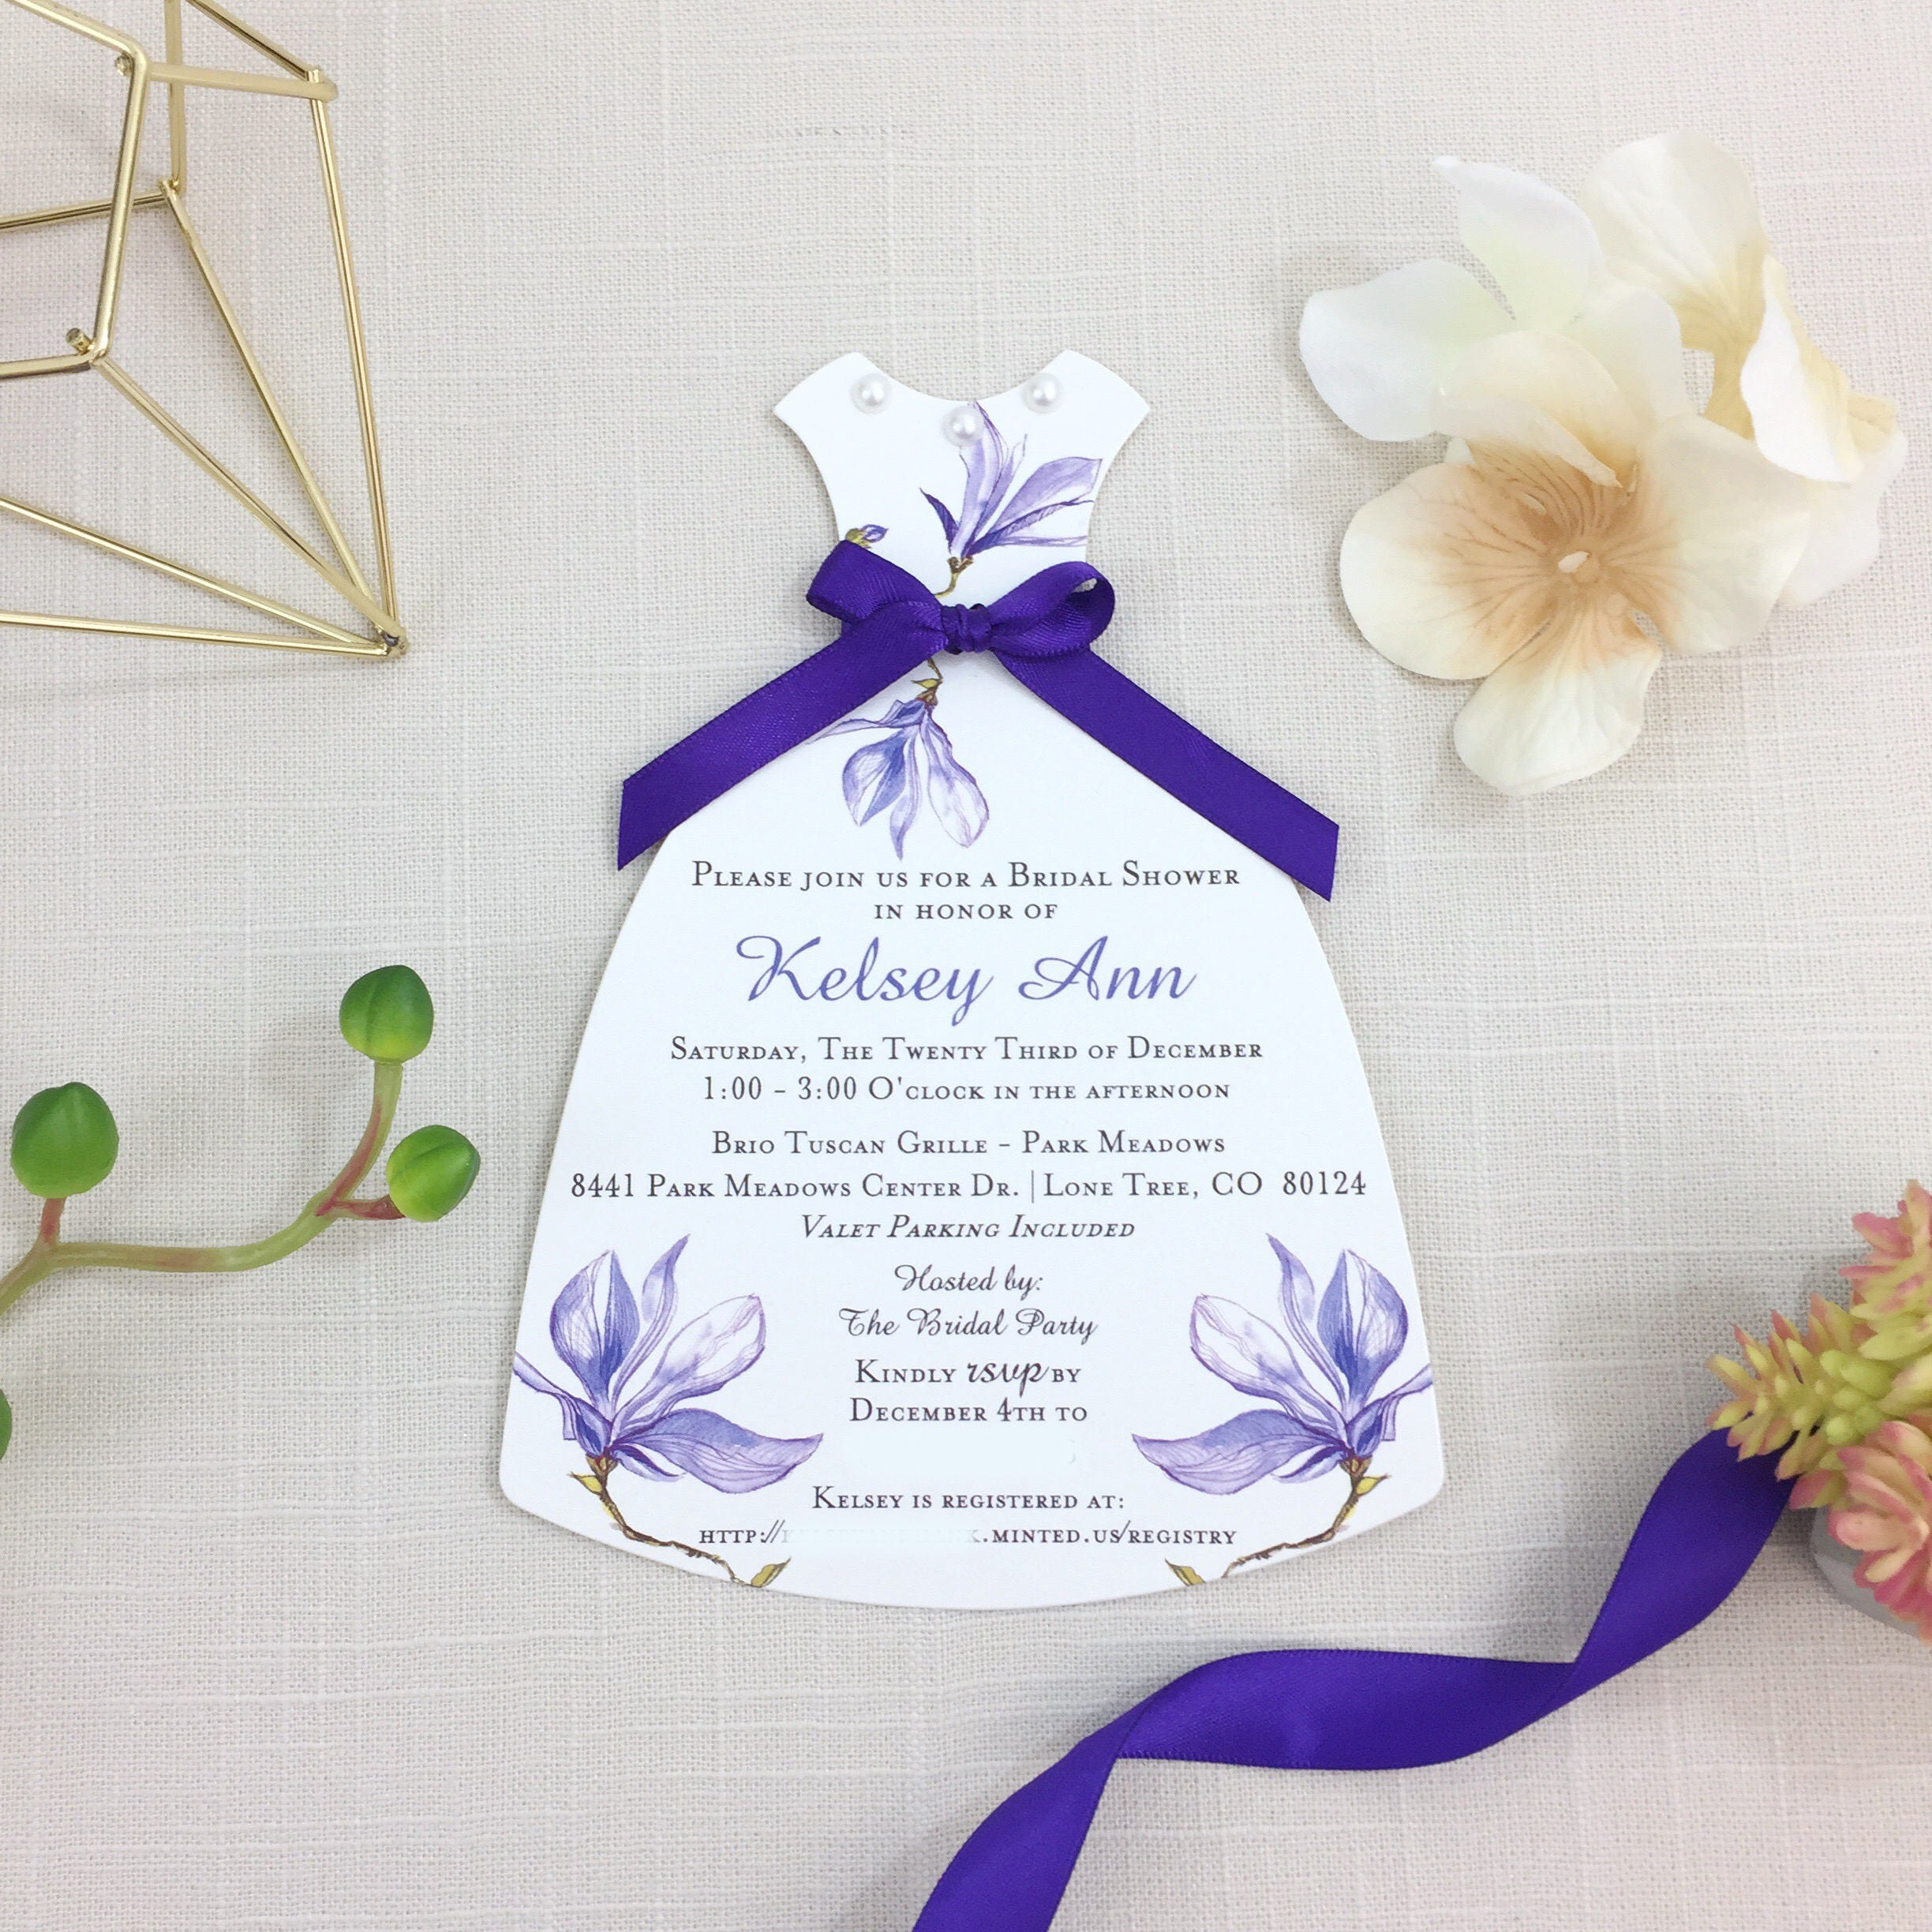 50: Exquisite Tuscan Wedding Invitations At Websimilar.org